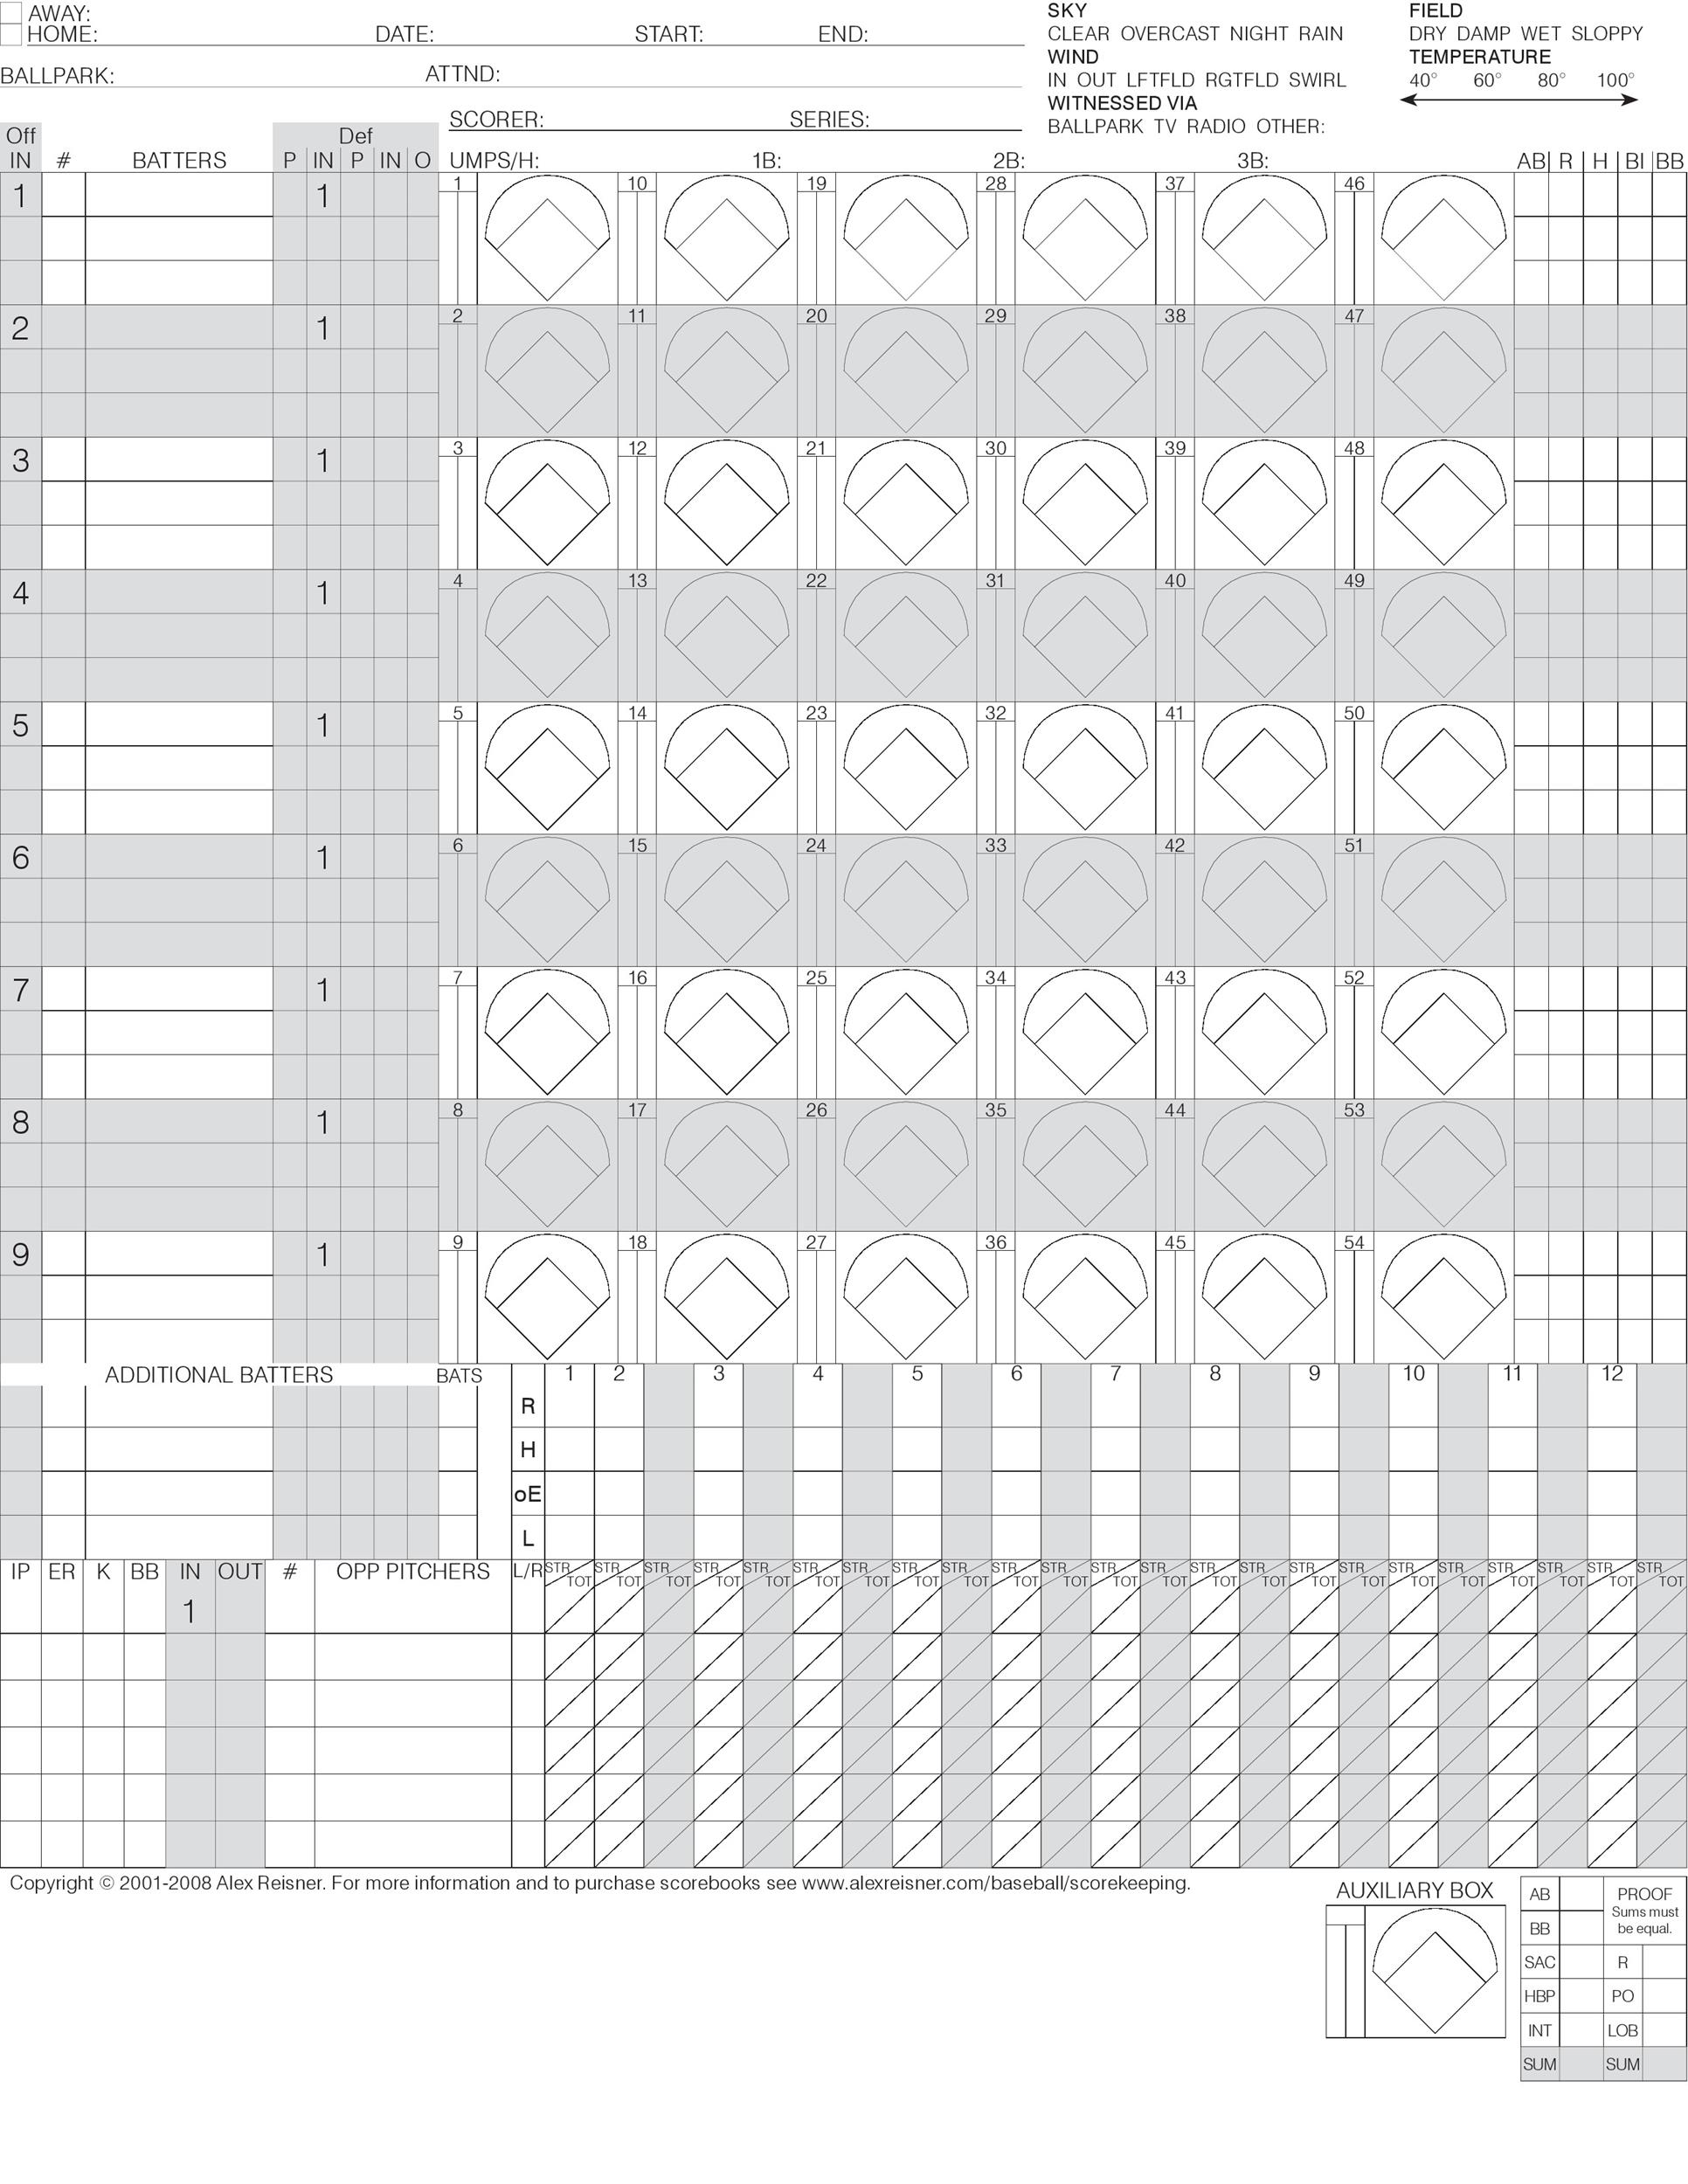 Superb Free Baseball Score Sheet Template 19